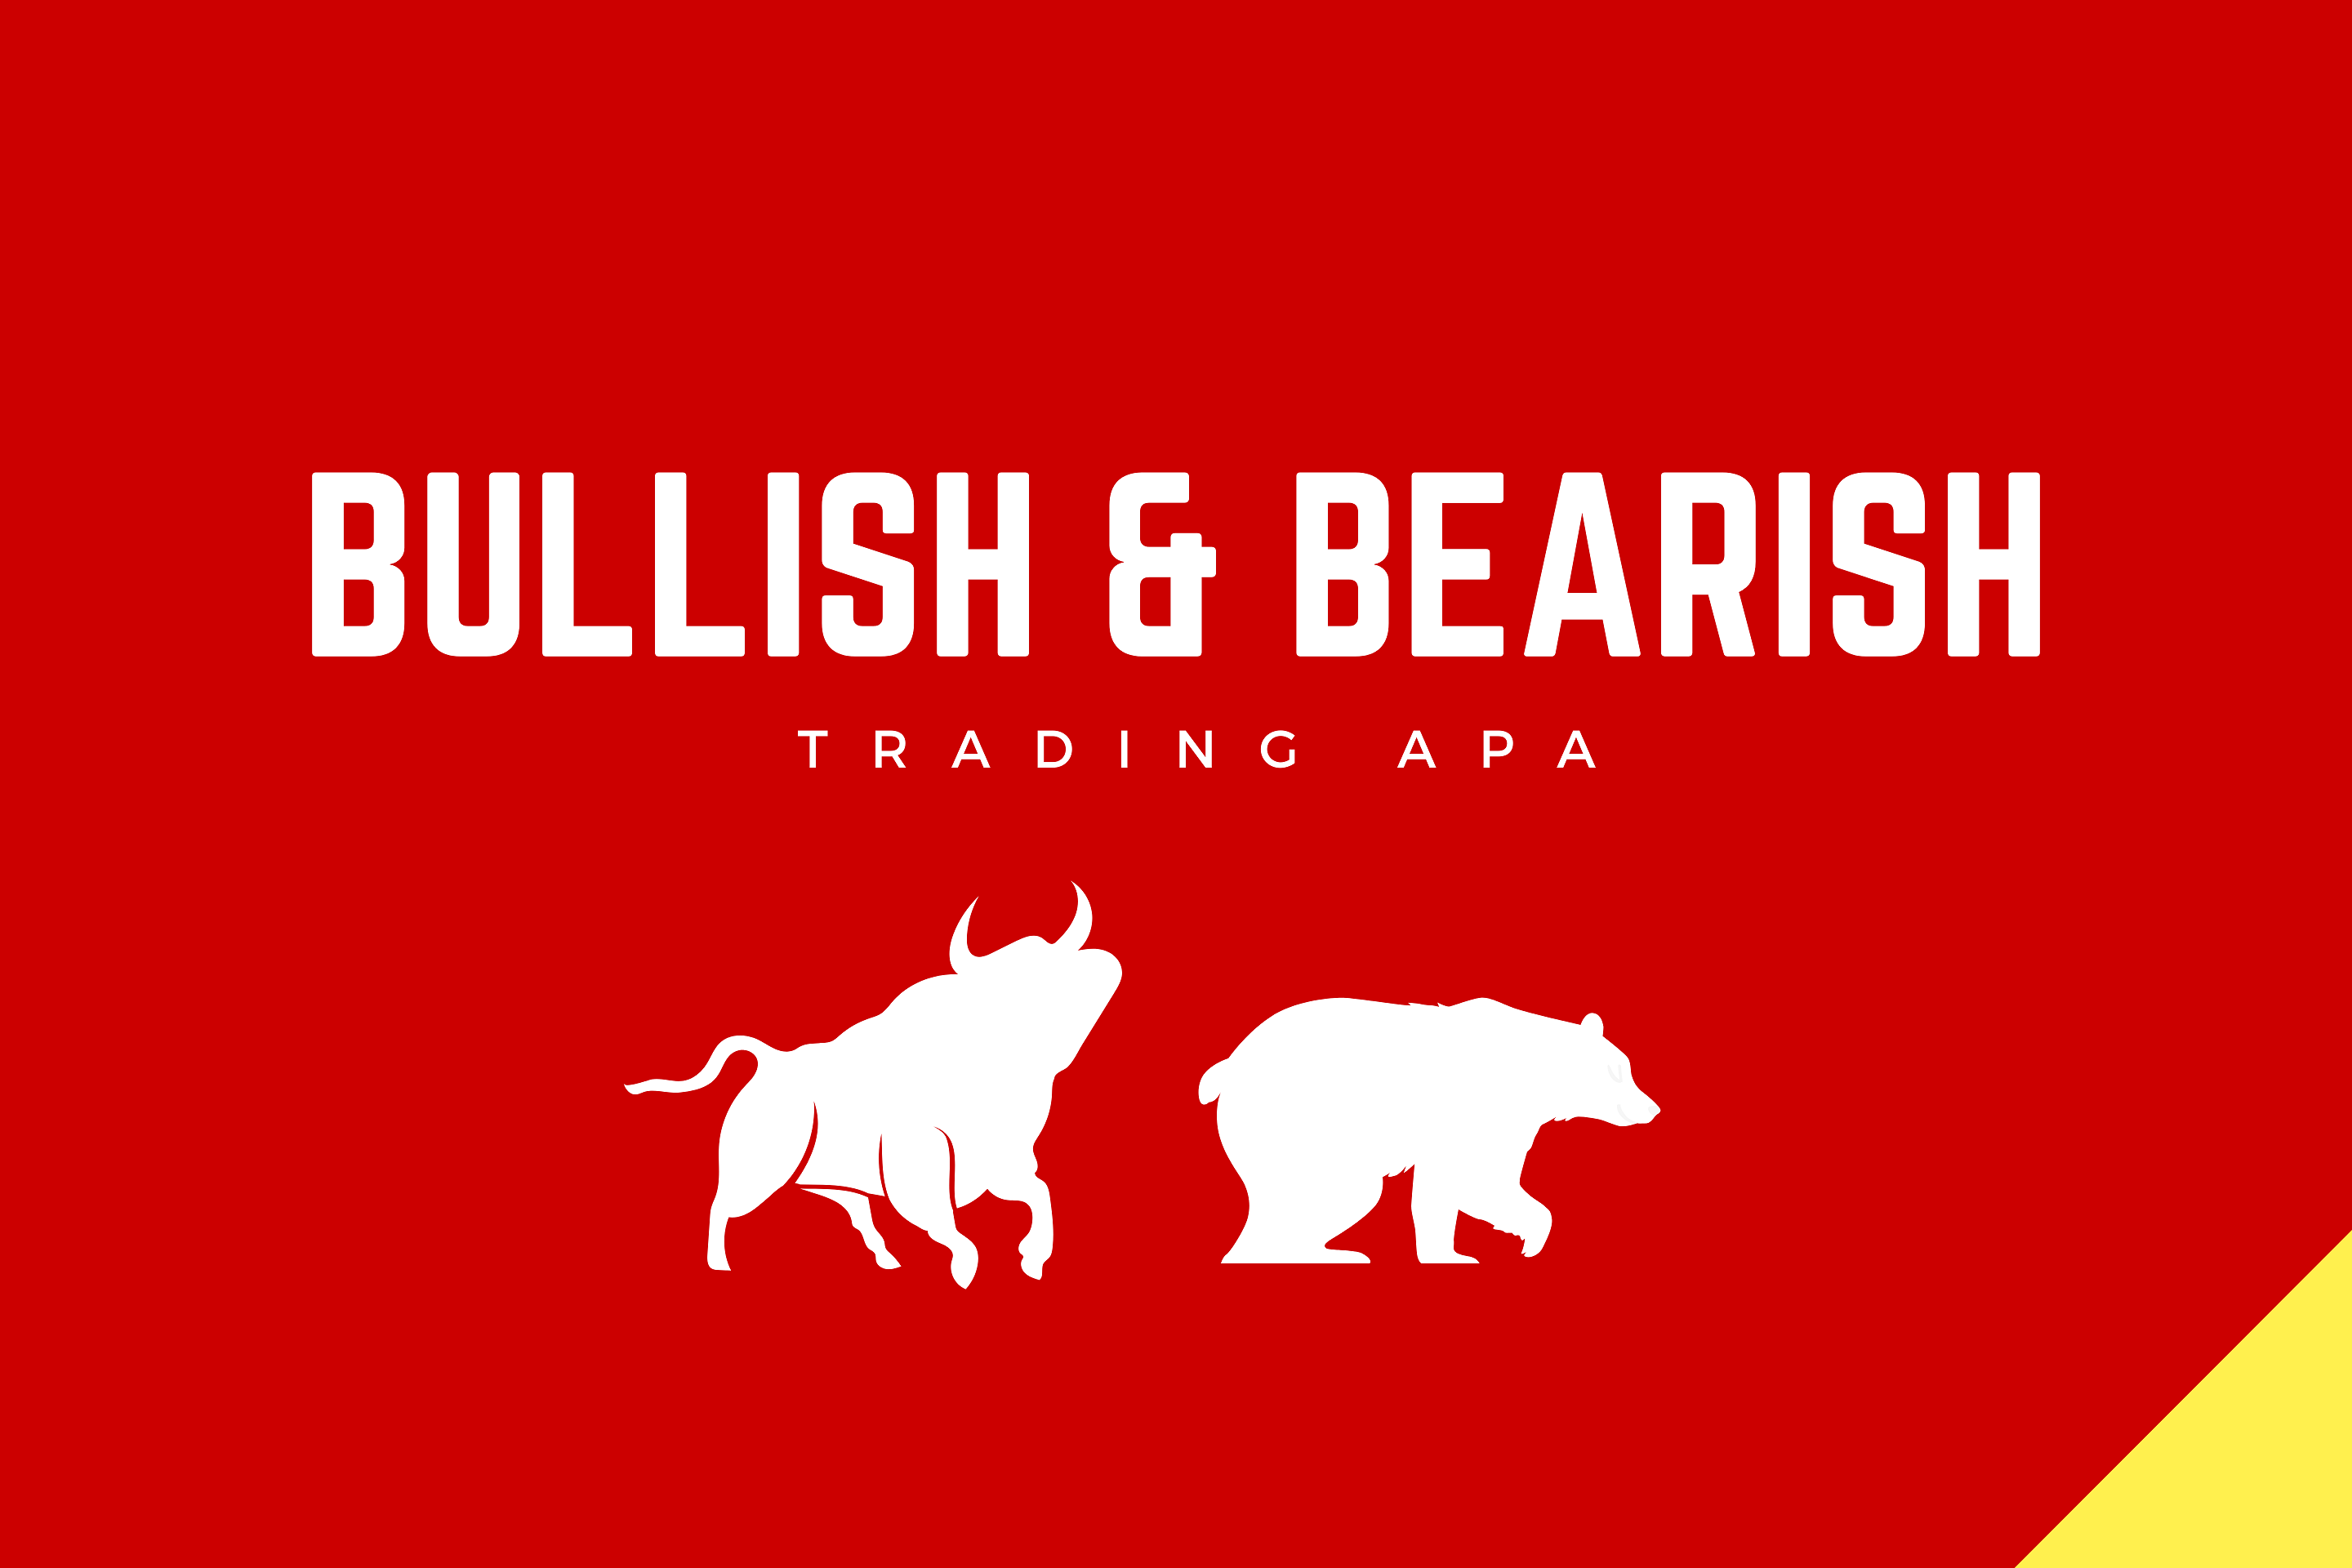 bullish bearish